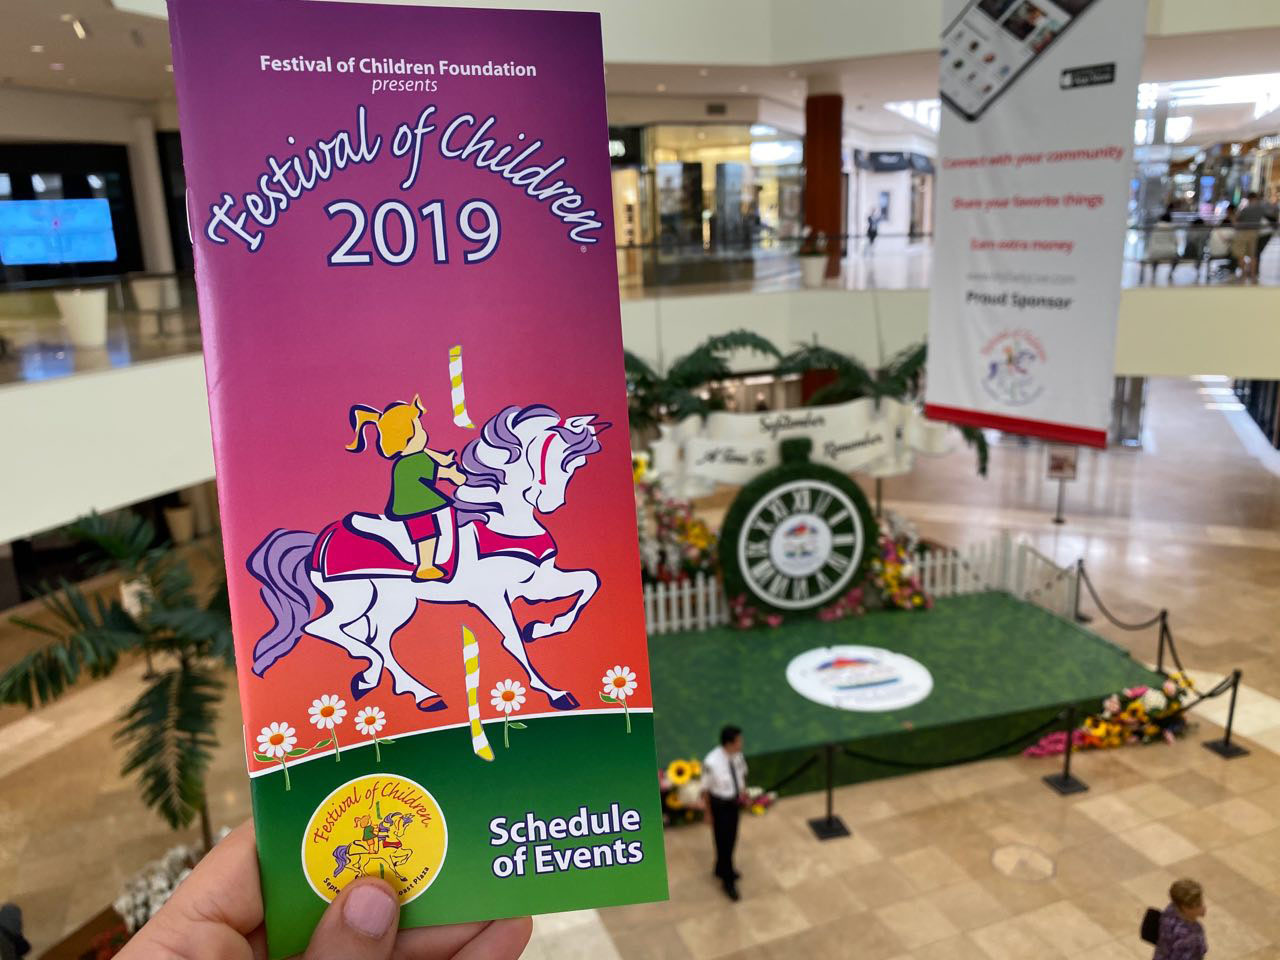 Festival of Children 2019 - Schedule of Events